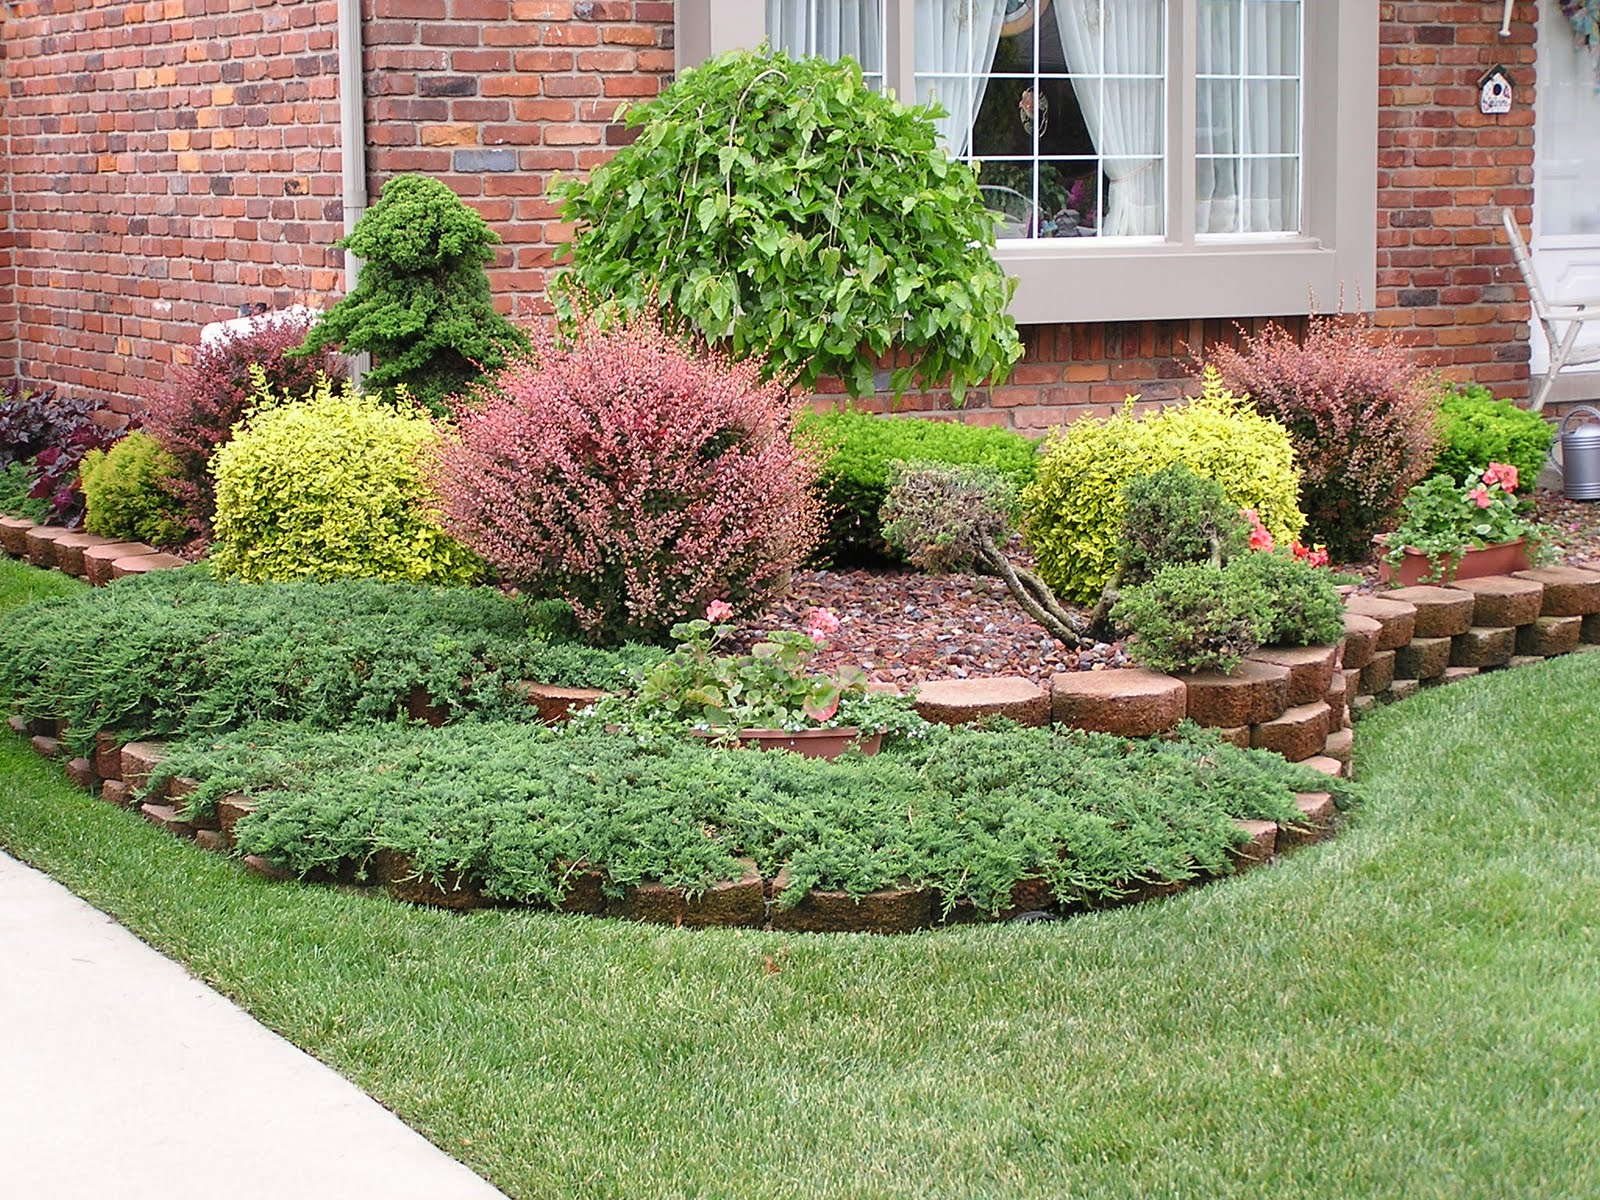 D i y d e s i g n curb appeal part 2 the landscaping for Plants for landscaping around house